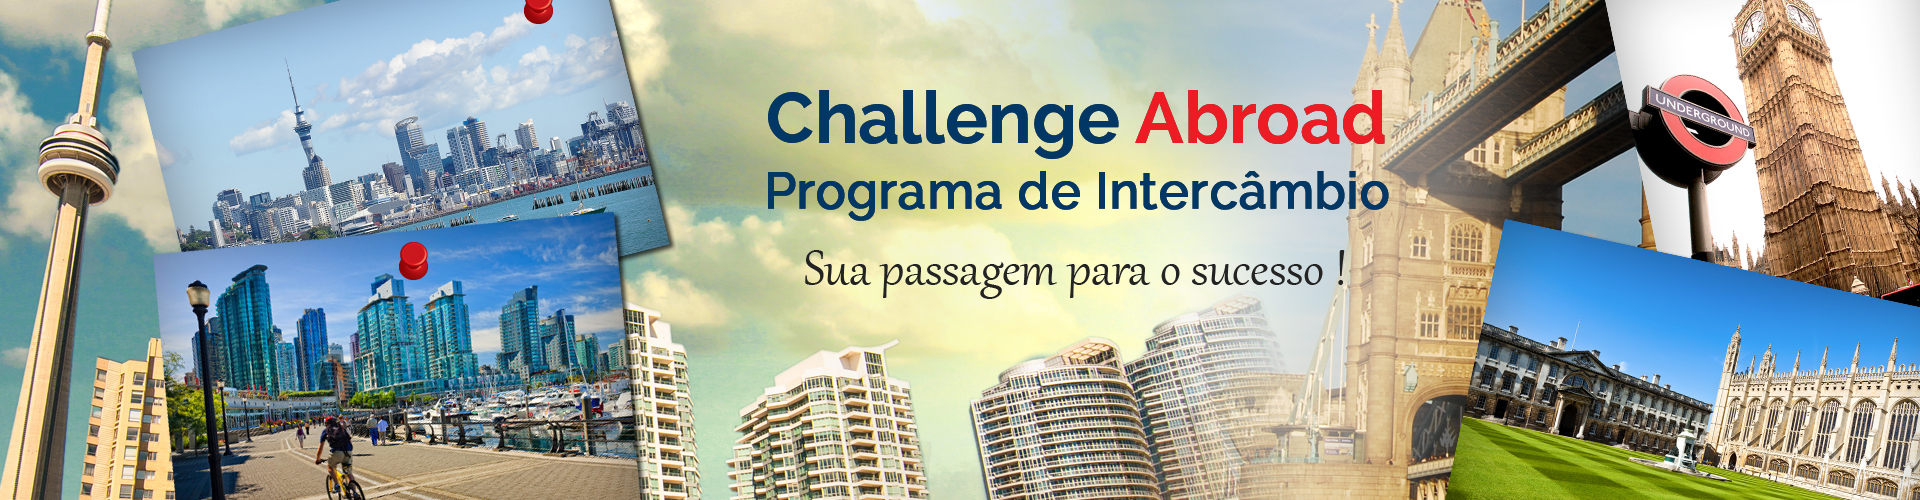 Challenge Abroad